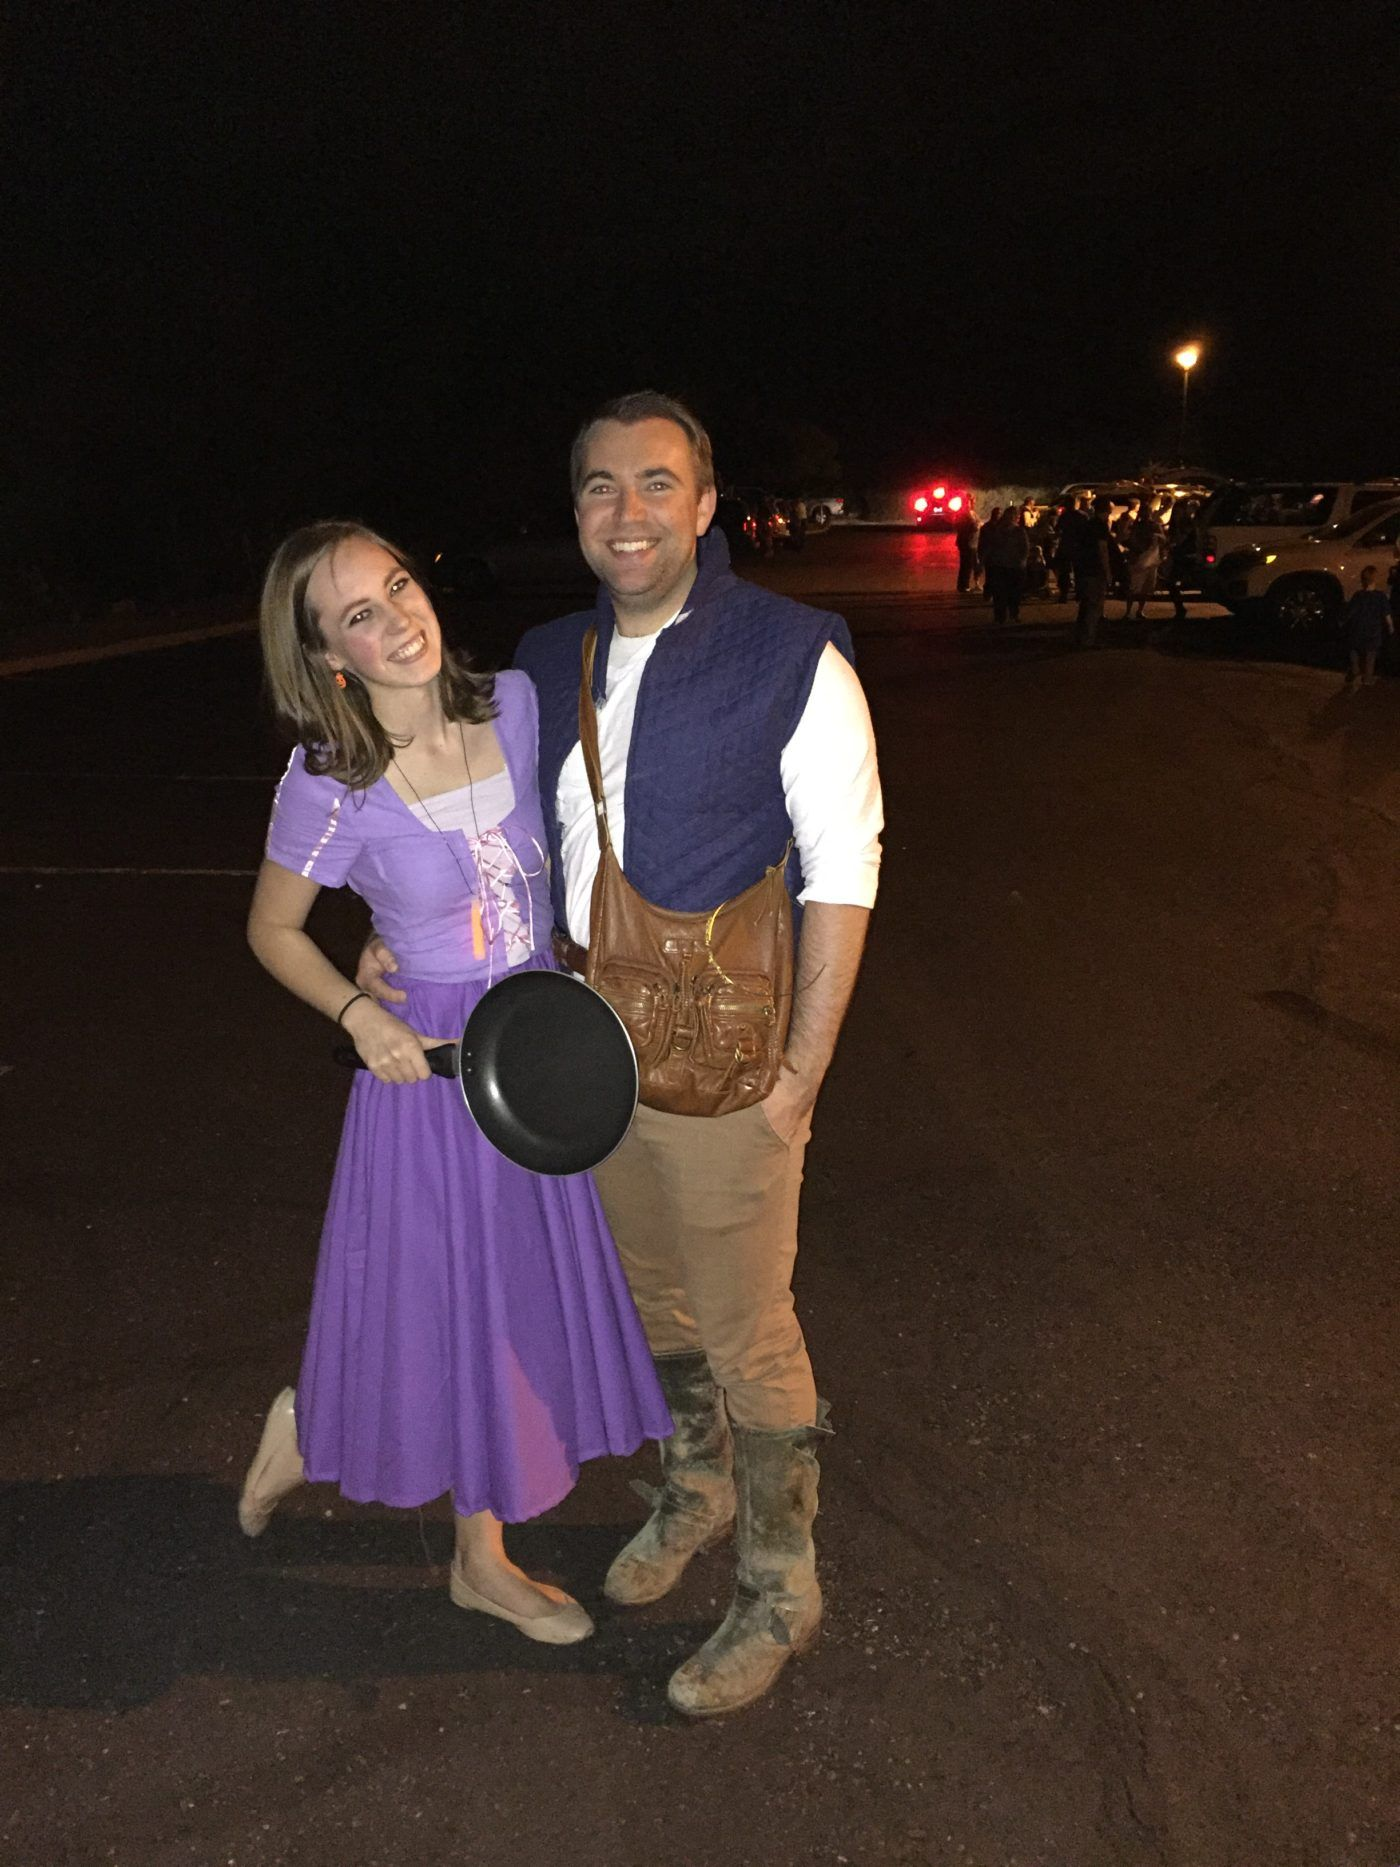 Diy Rapunzel Costume Flynn Rider Eugene Disney Halloween Couples Costume Costume Ideas Rapunzel Costume Couples Costumes Couple Halloween